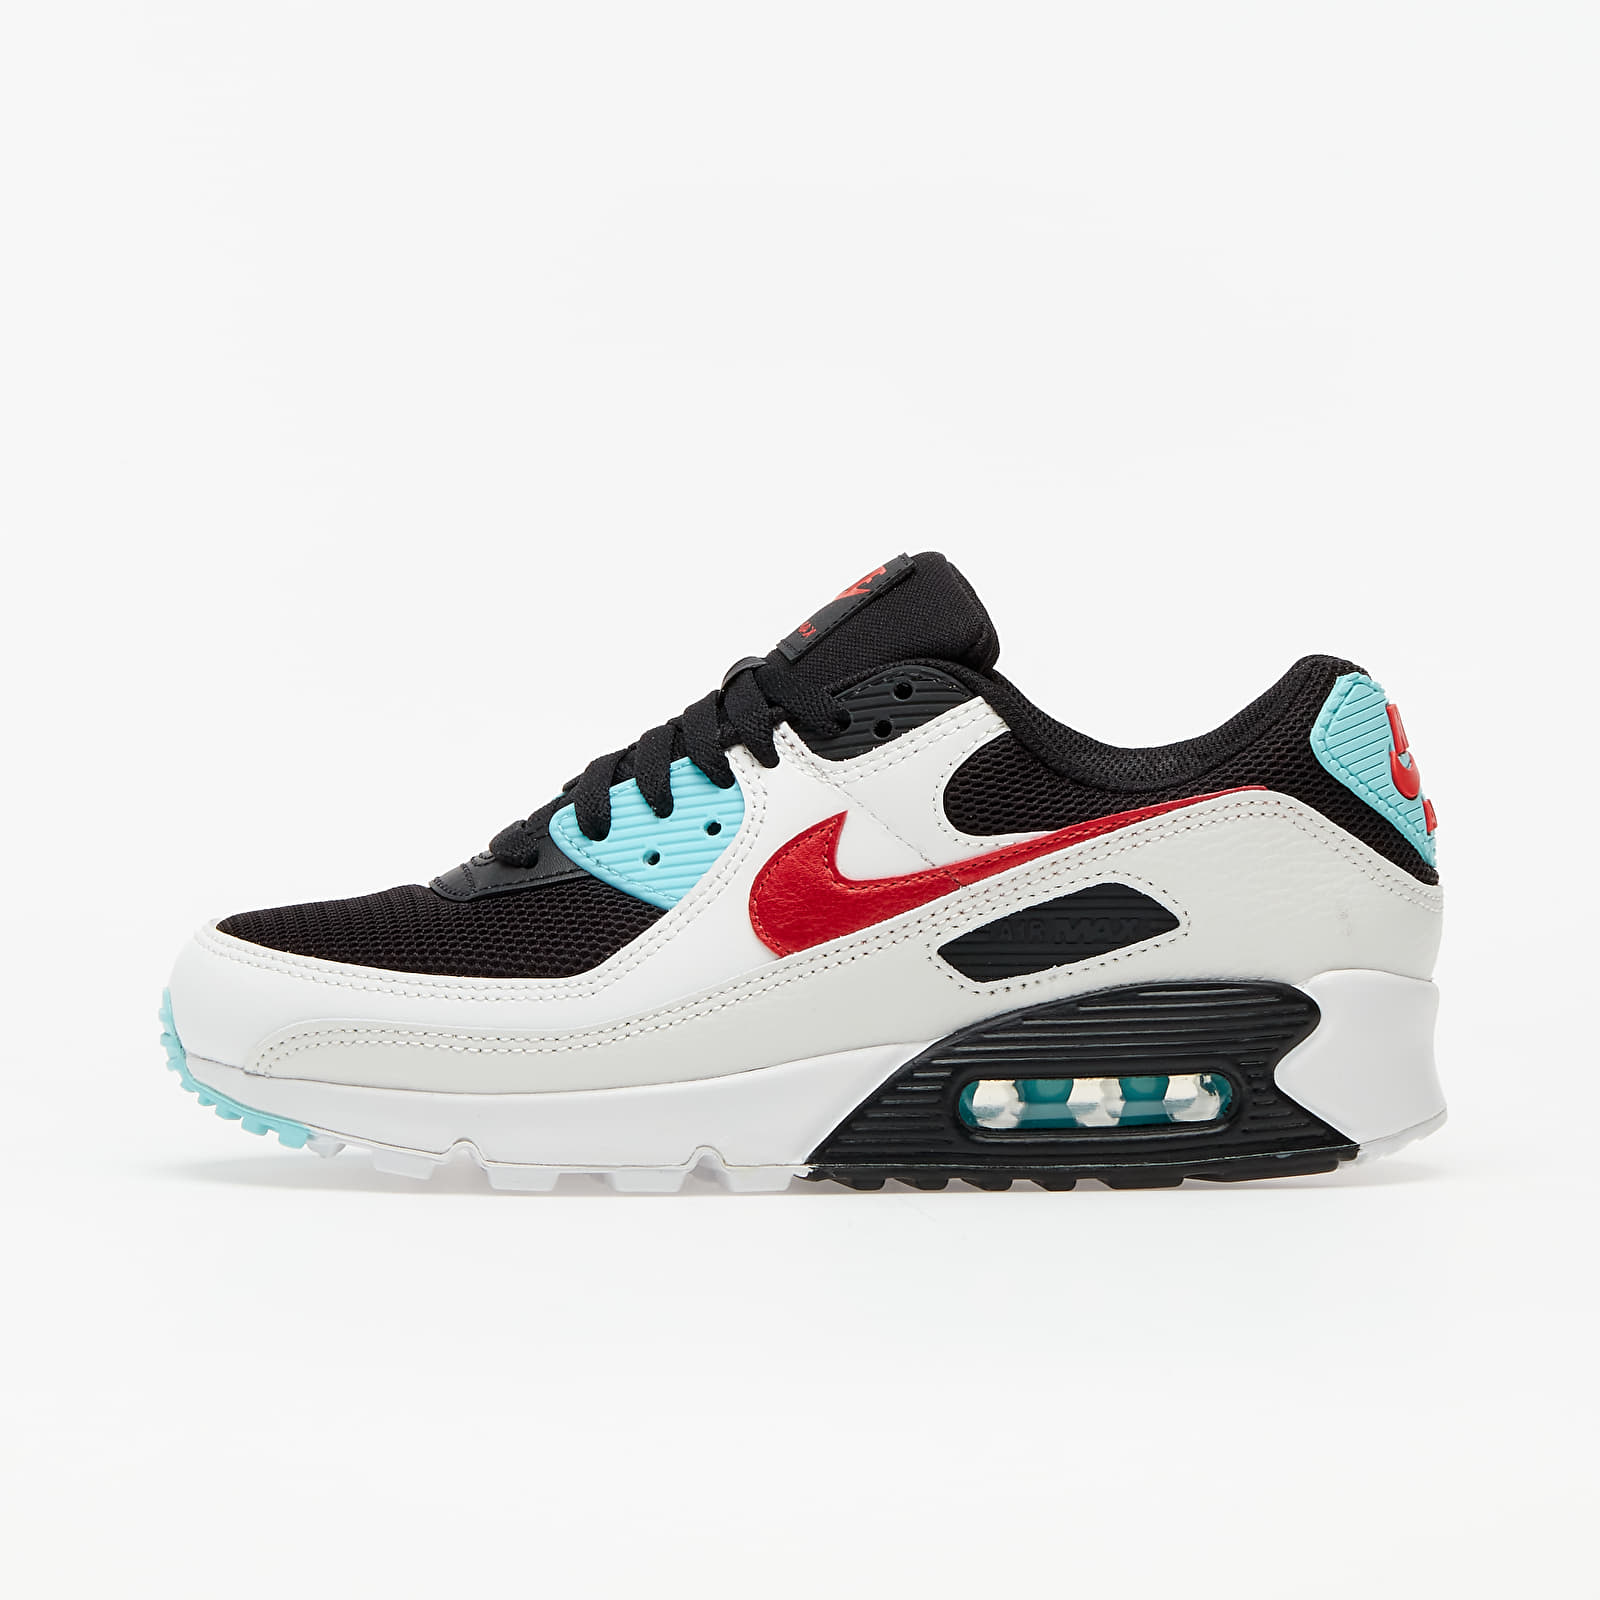 Women's shoes Nike Wmns Air Max 90 Summit White/ Chile Red-Bleached Aqua